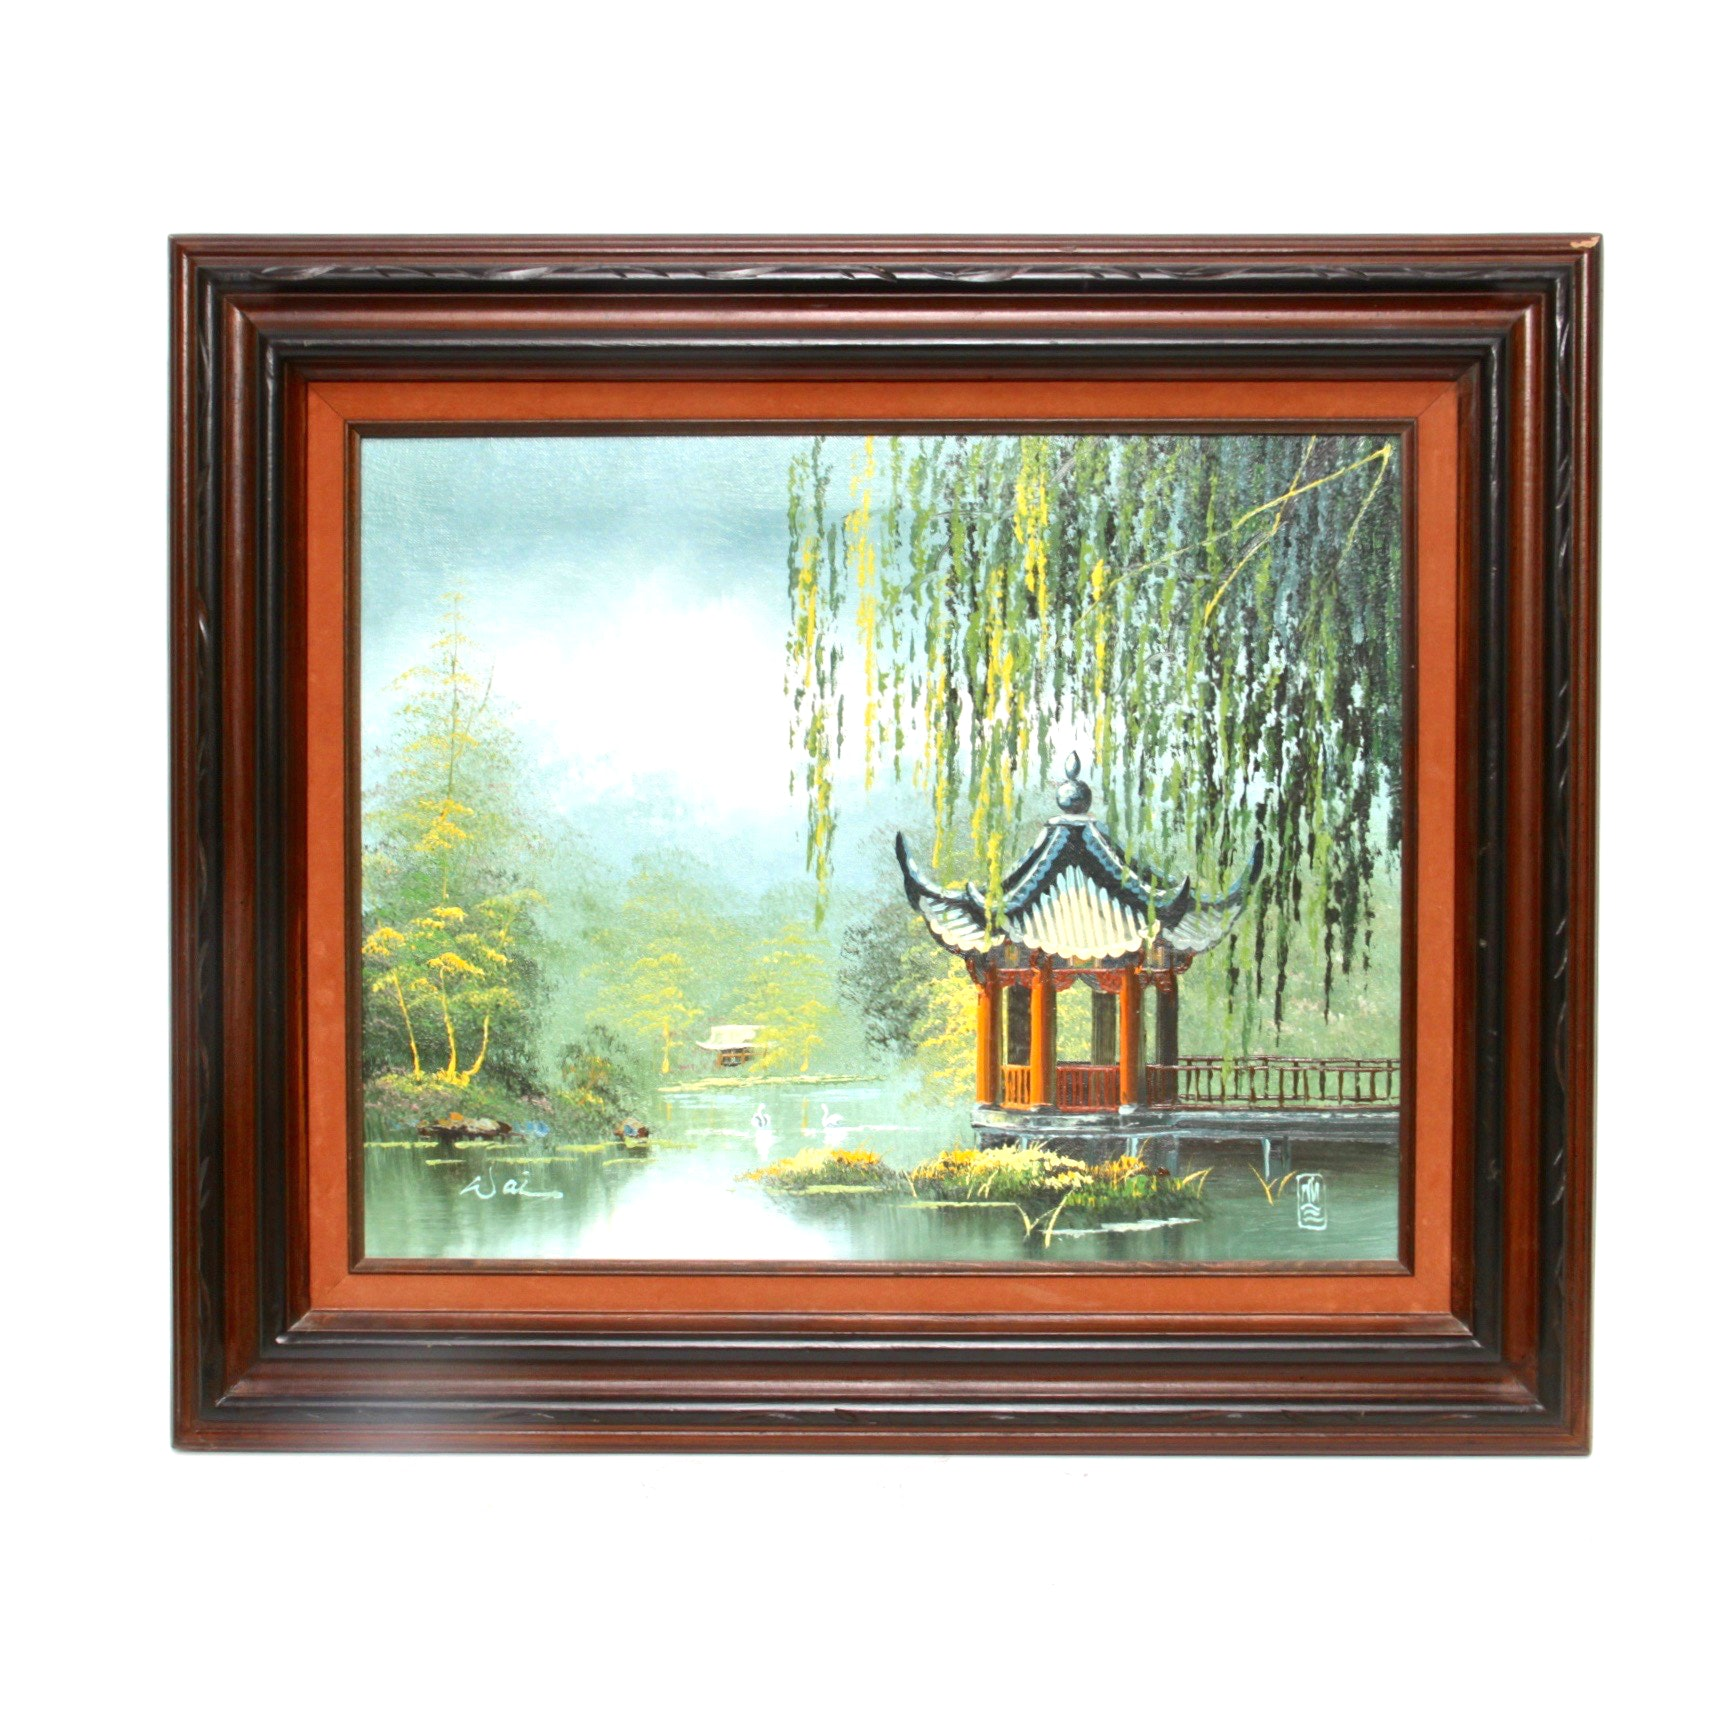 Acrylic Painting on Canvas of a Japanese Building Beside a Lake